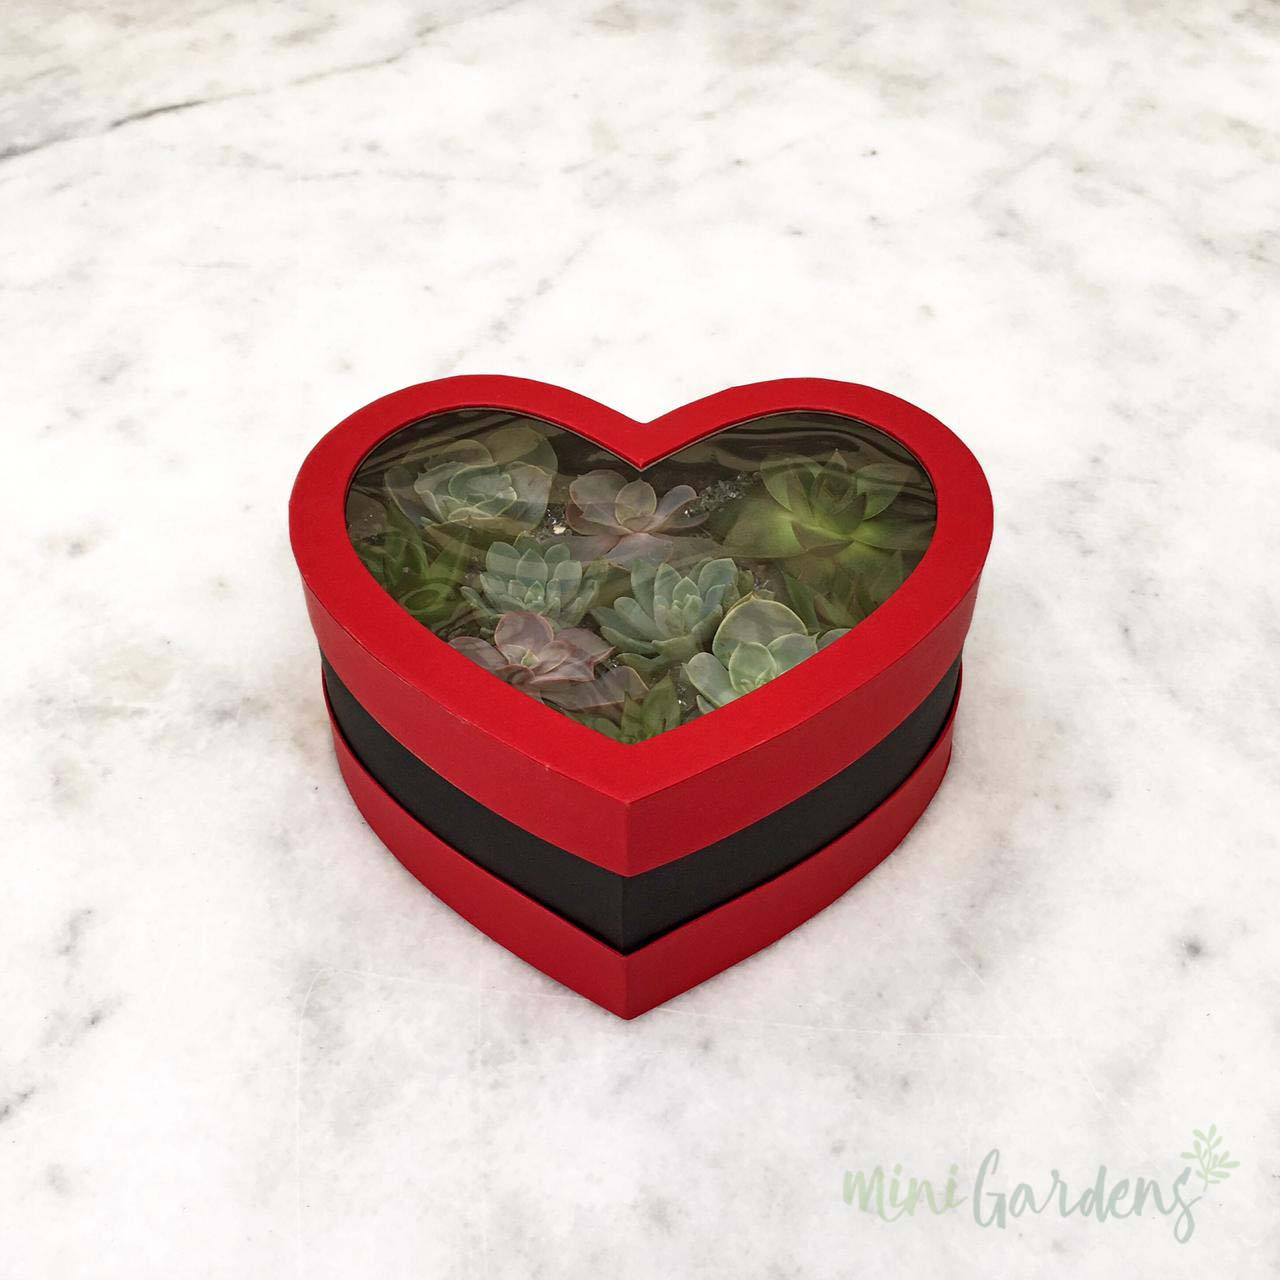 Heart Garden (Red) Shop Online MiniGardens.ae Free Delivery Dubai